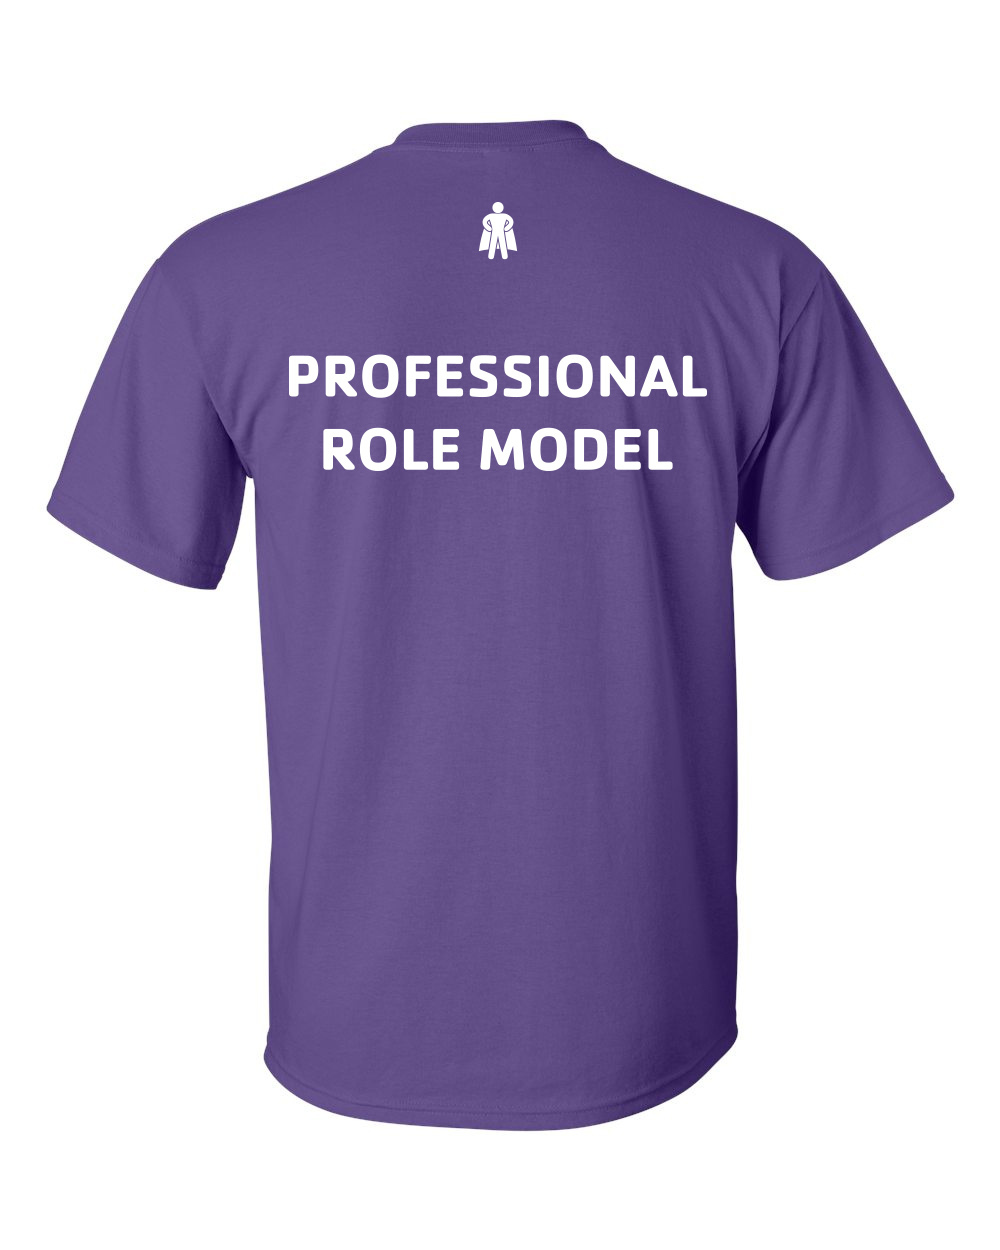 Role Model subcategory image